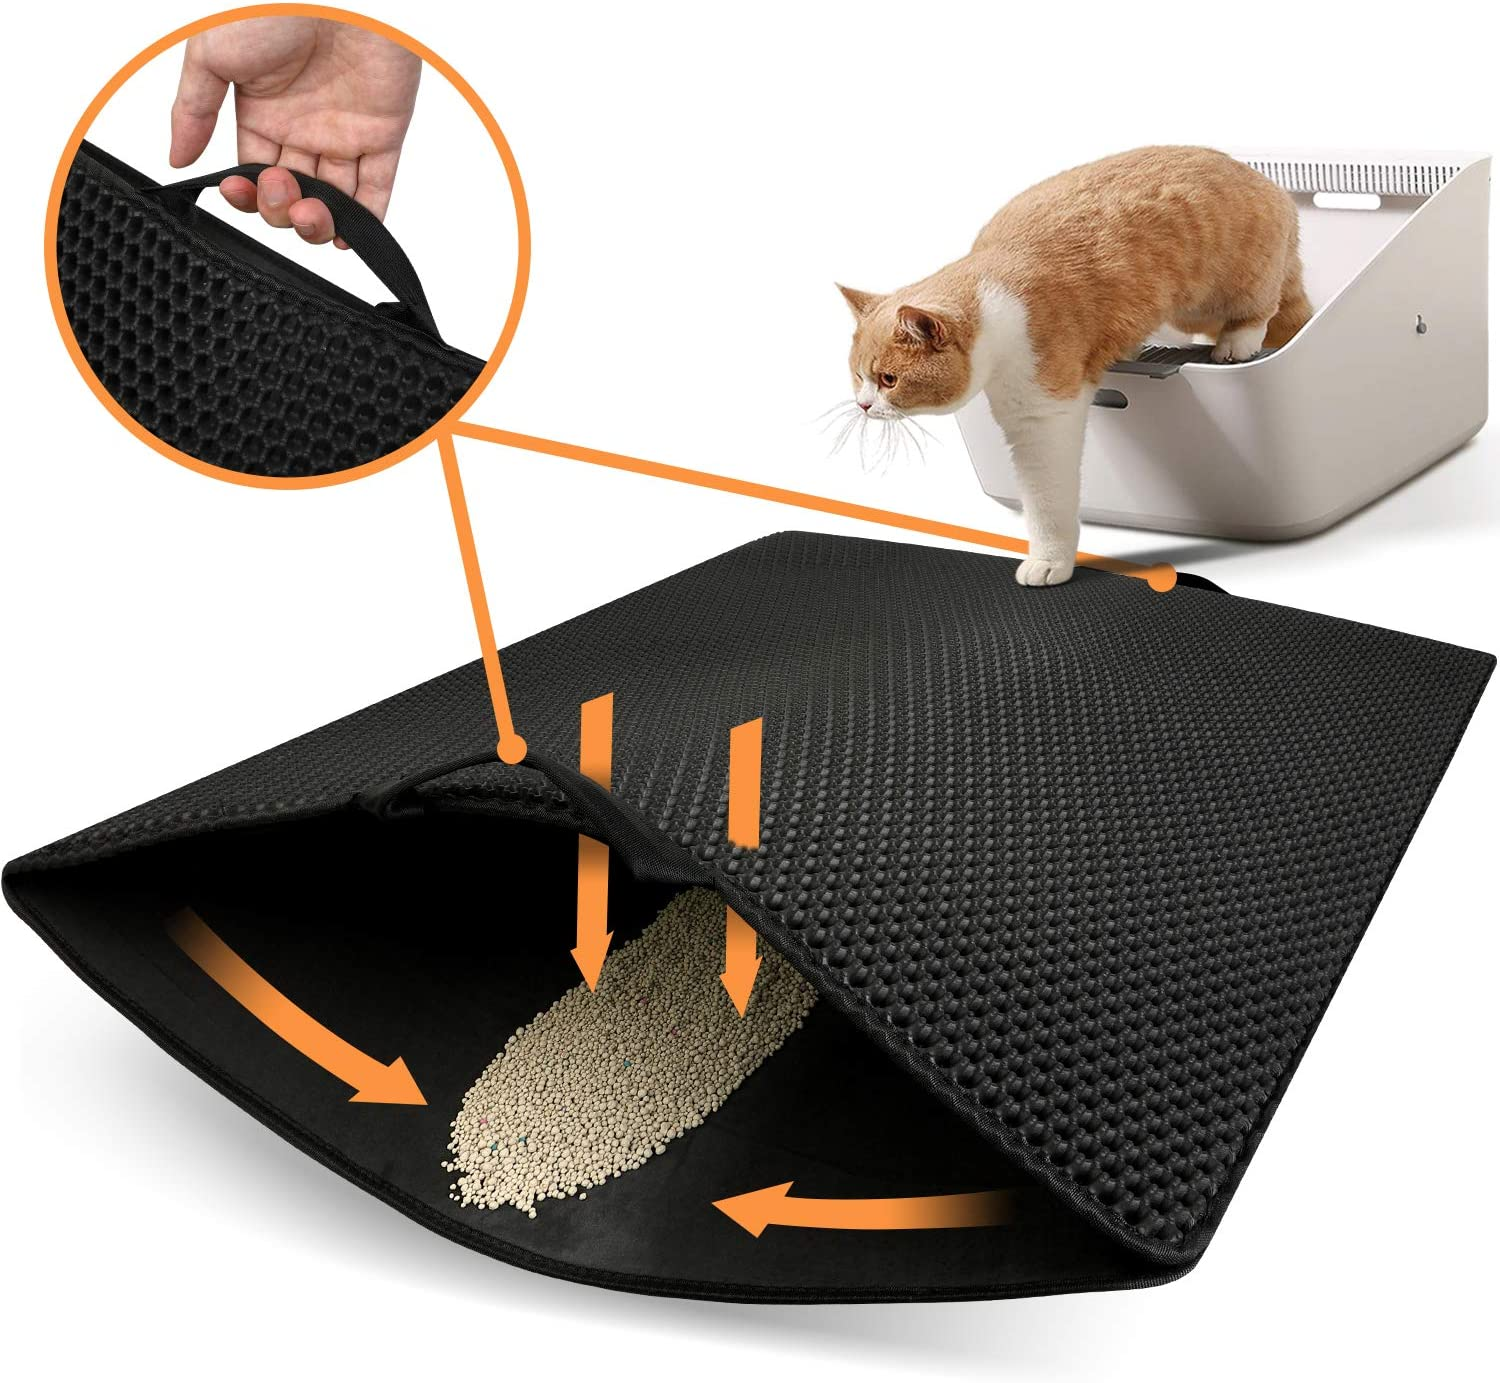 "Polarduck Cat Litter Mat, 32"" X 25"", Cat Litter Trapping Mat Extra Large, Honeycomb Double Layer Design, Urine and Water Proof Material, Special Side Handles Design Easier to Clean, Washable"